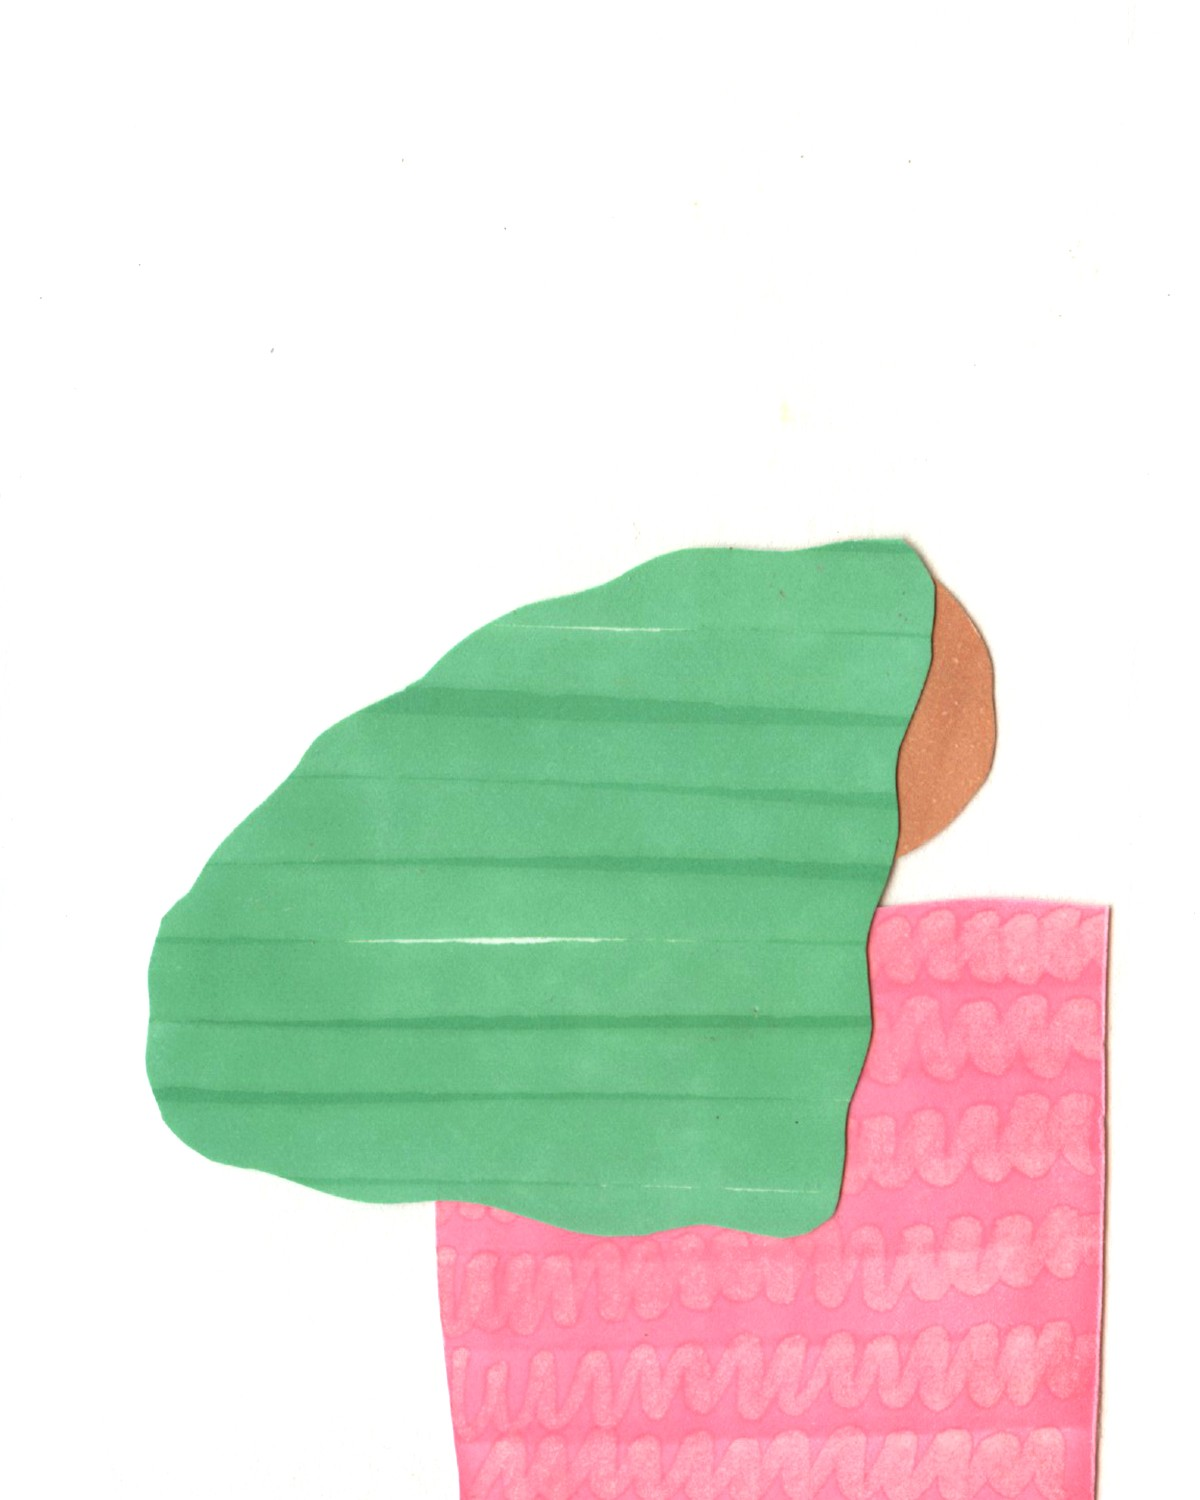 Collage with basic pink/brown/green shapes that illustrate girl with back towards viewer.